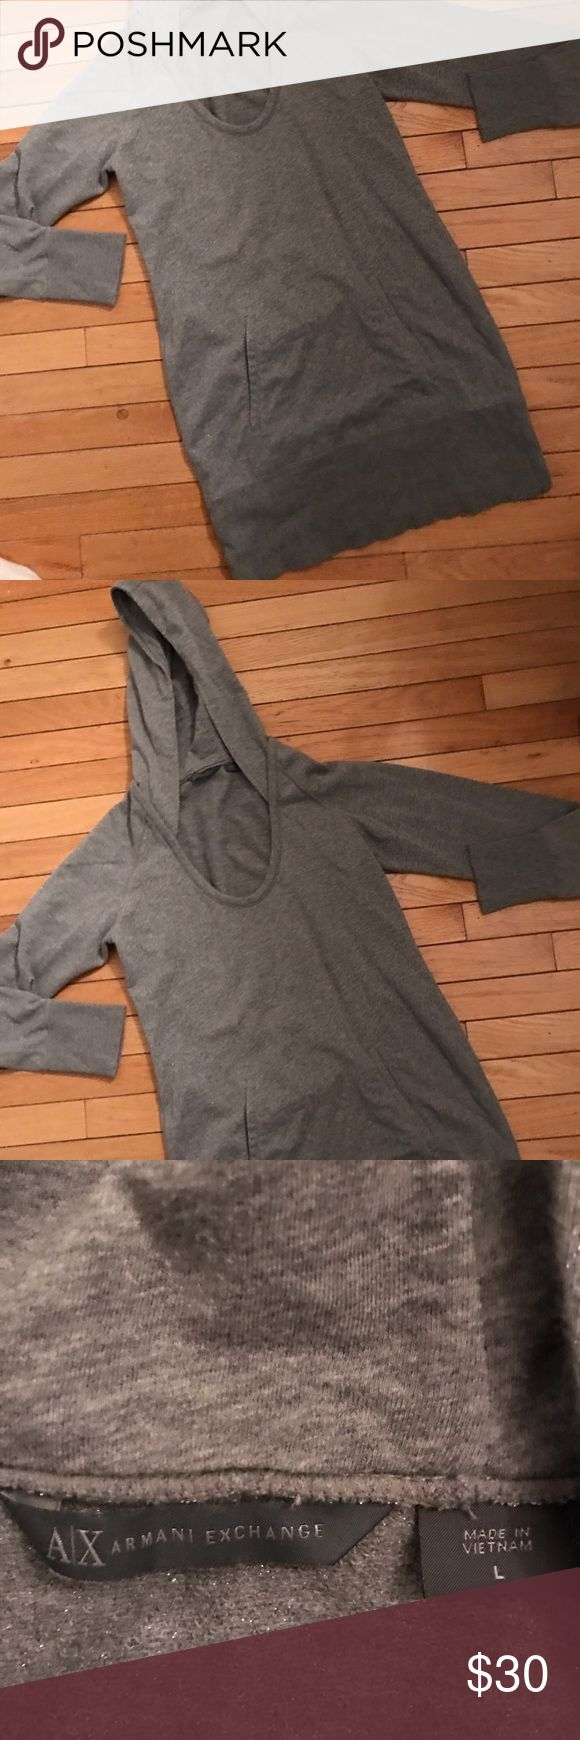 Armani Exchange metallic sweatshirt tunic hoodie In excellent condition perfect with leggings size says large fits more like a medium. A/X Armani Exchange Tops Sweatshirts & Hoodies